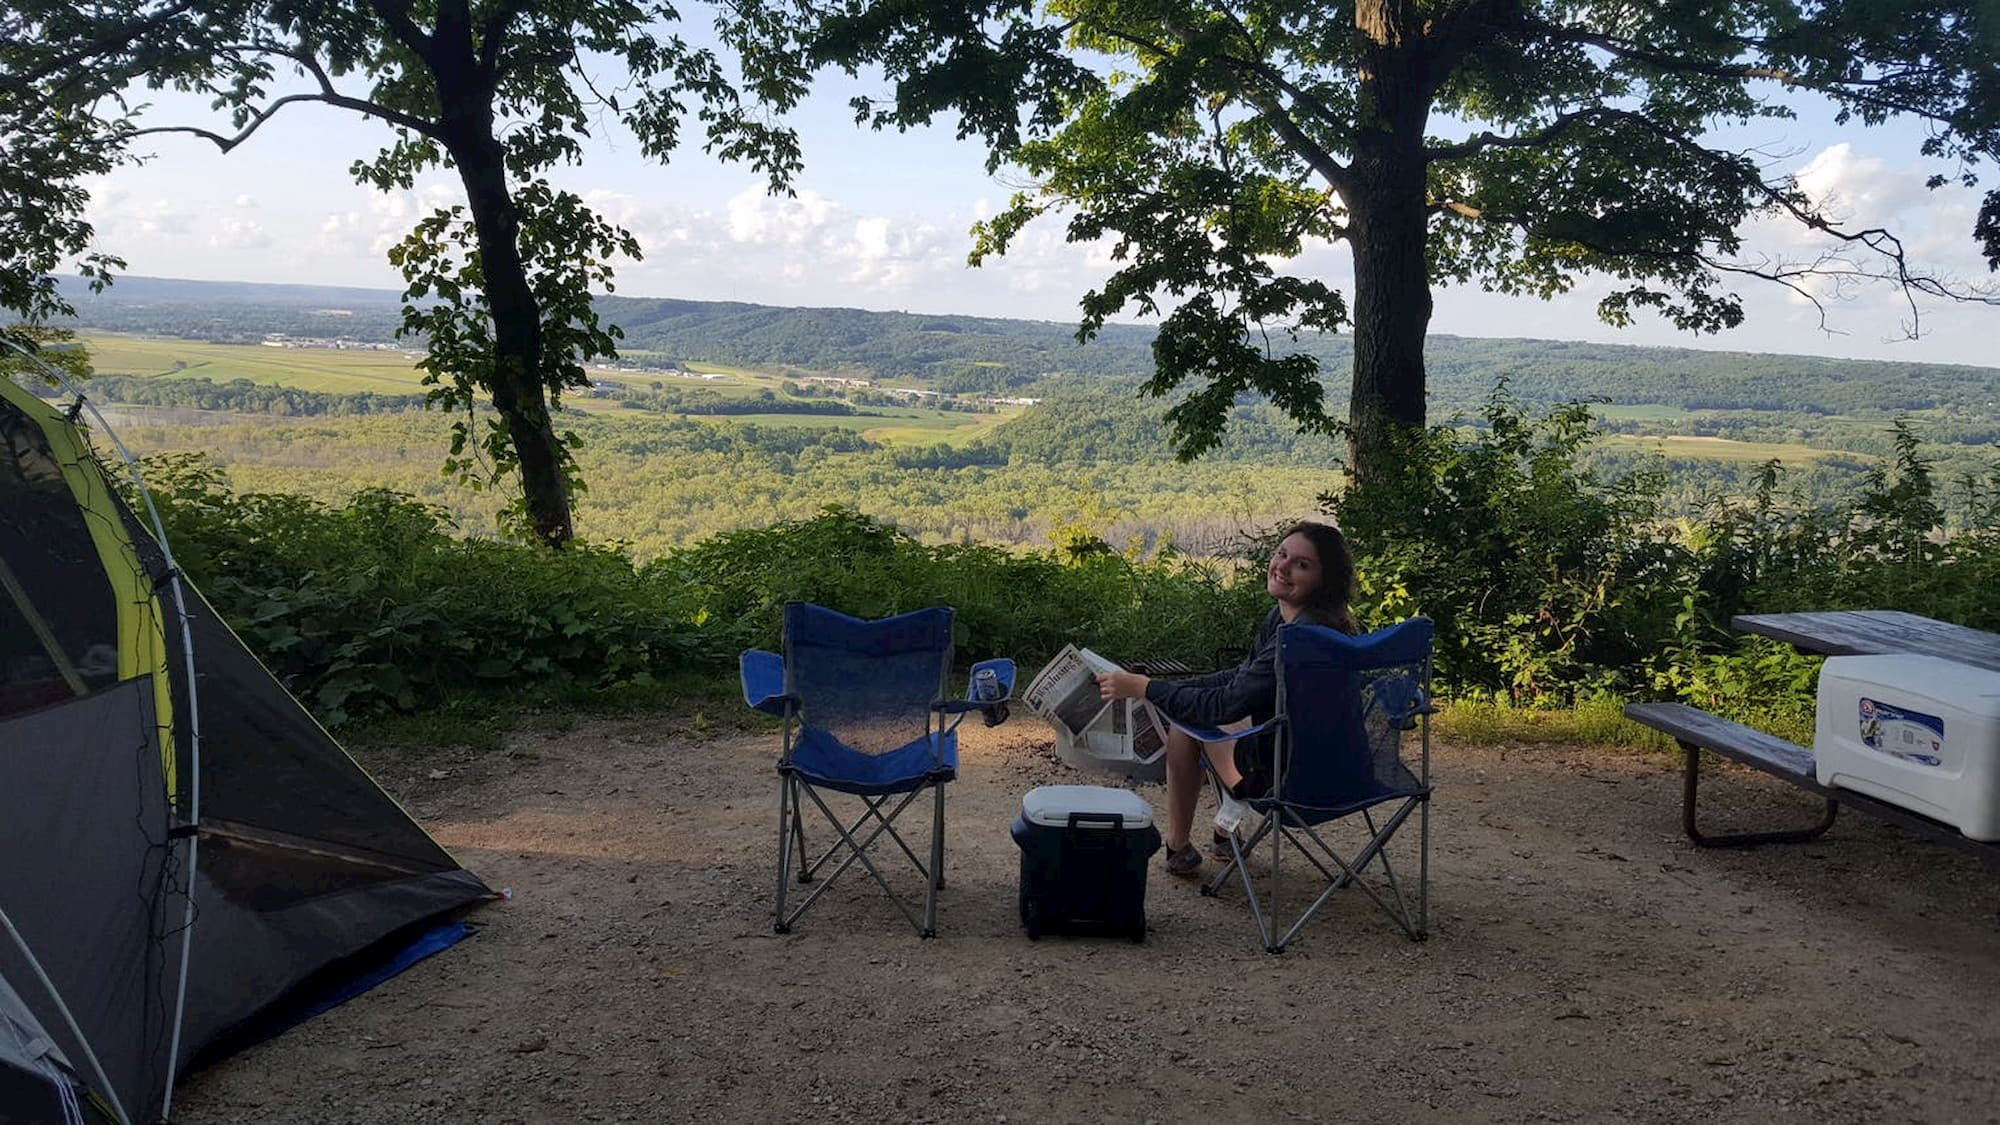 Women relaxing in camp chair ion shaded area in front of large panoramic view of a valley